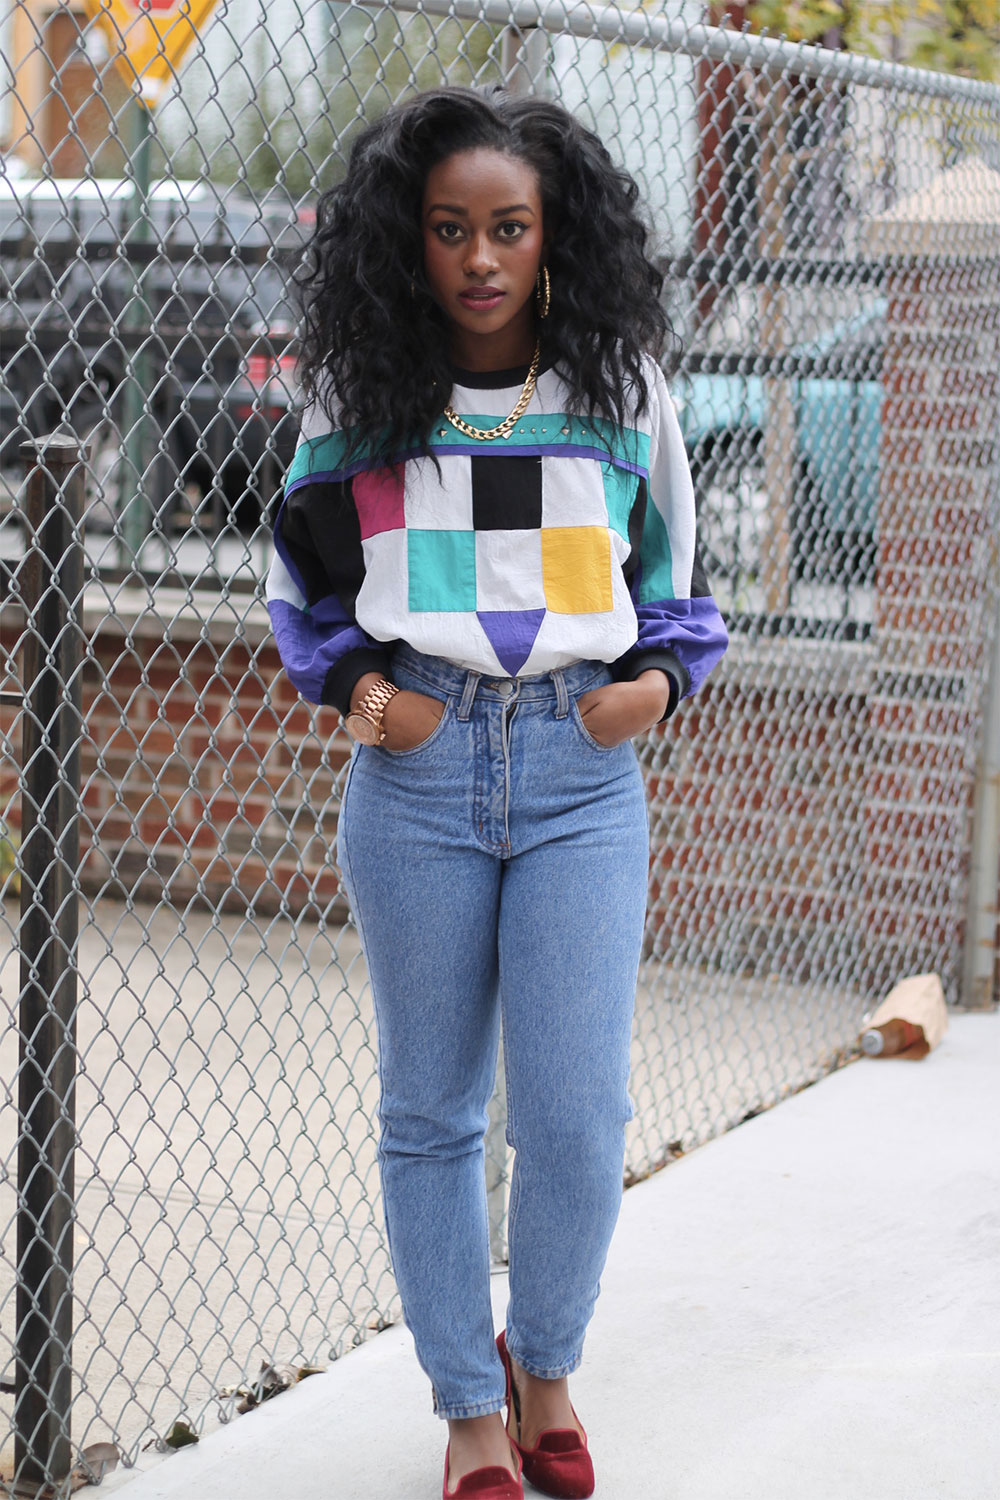 90s fashion trends for black women 10